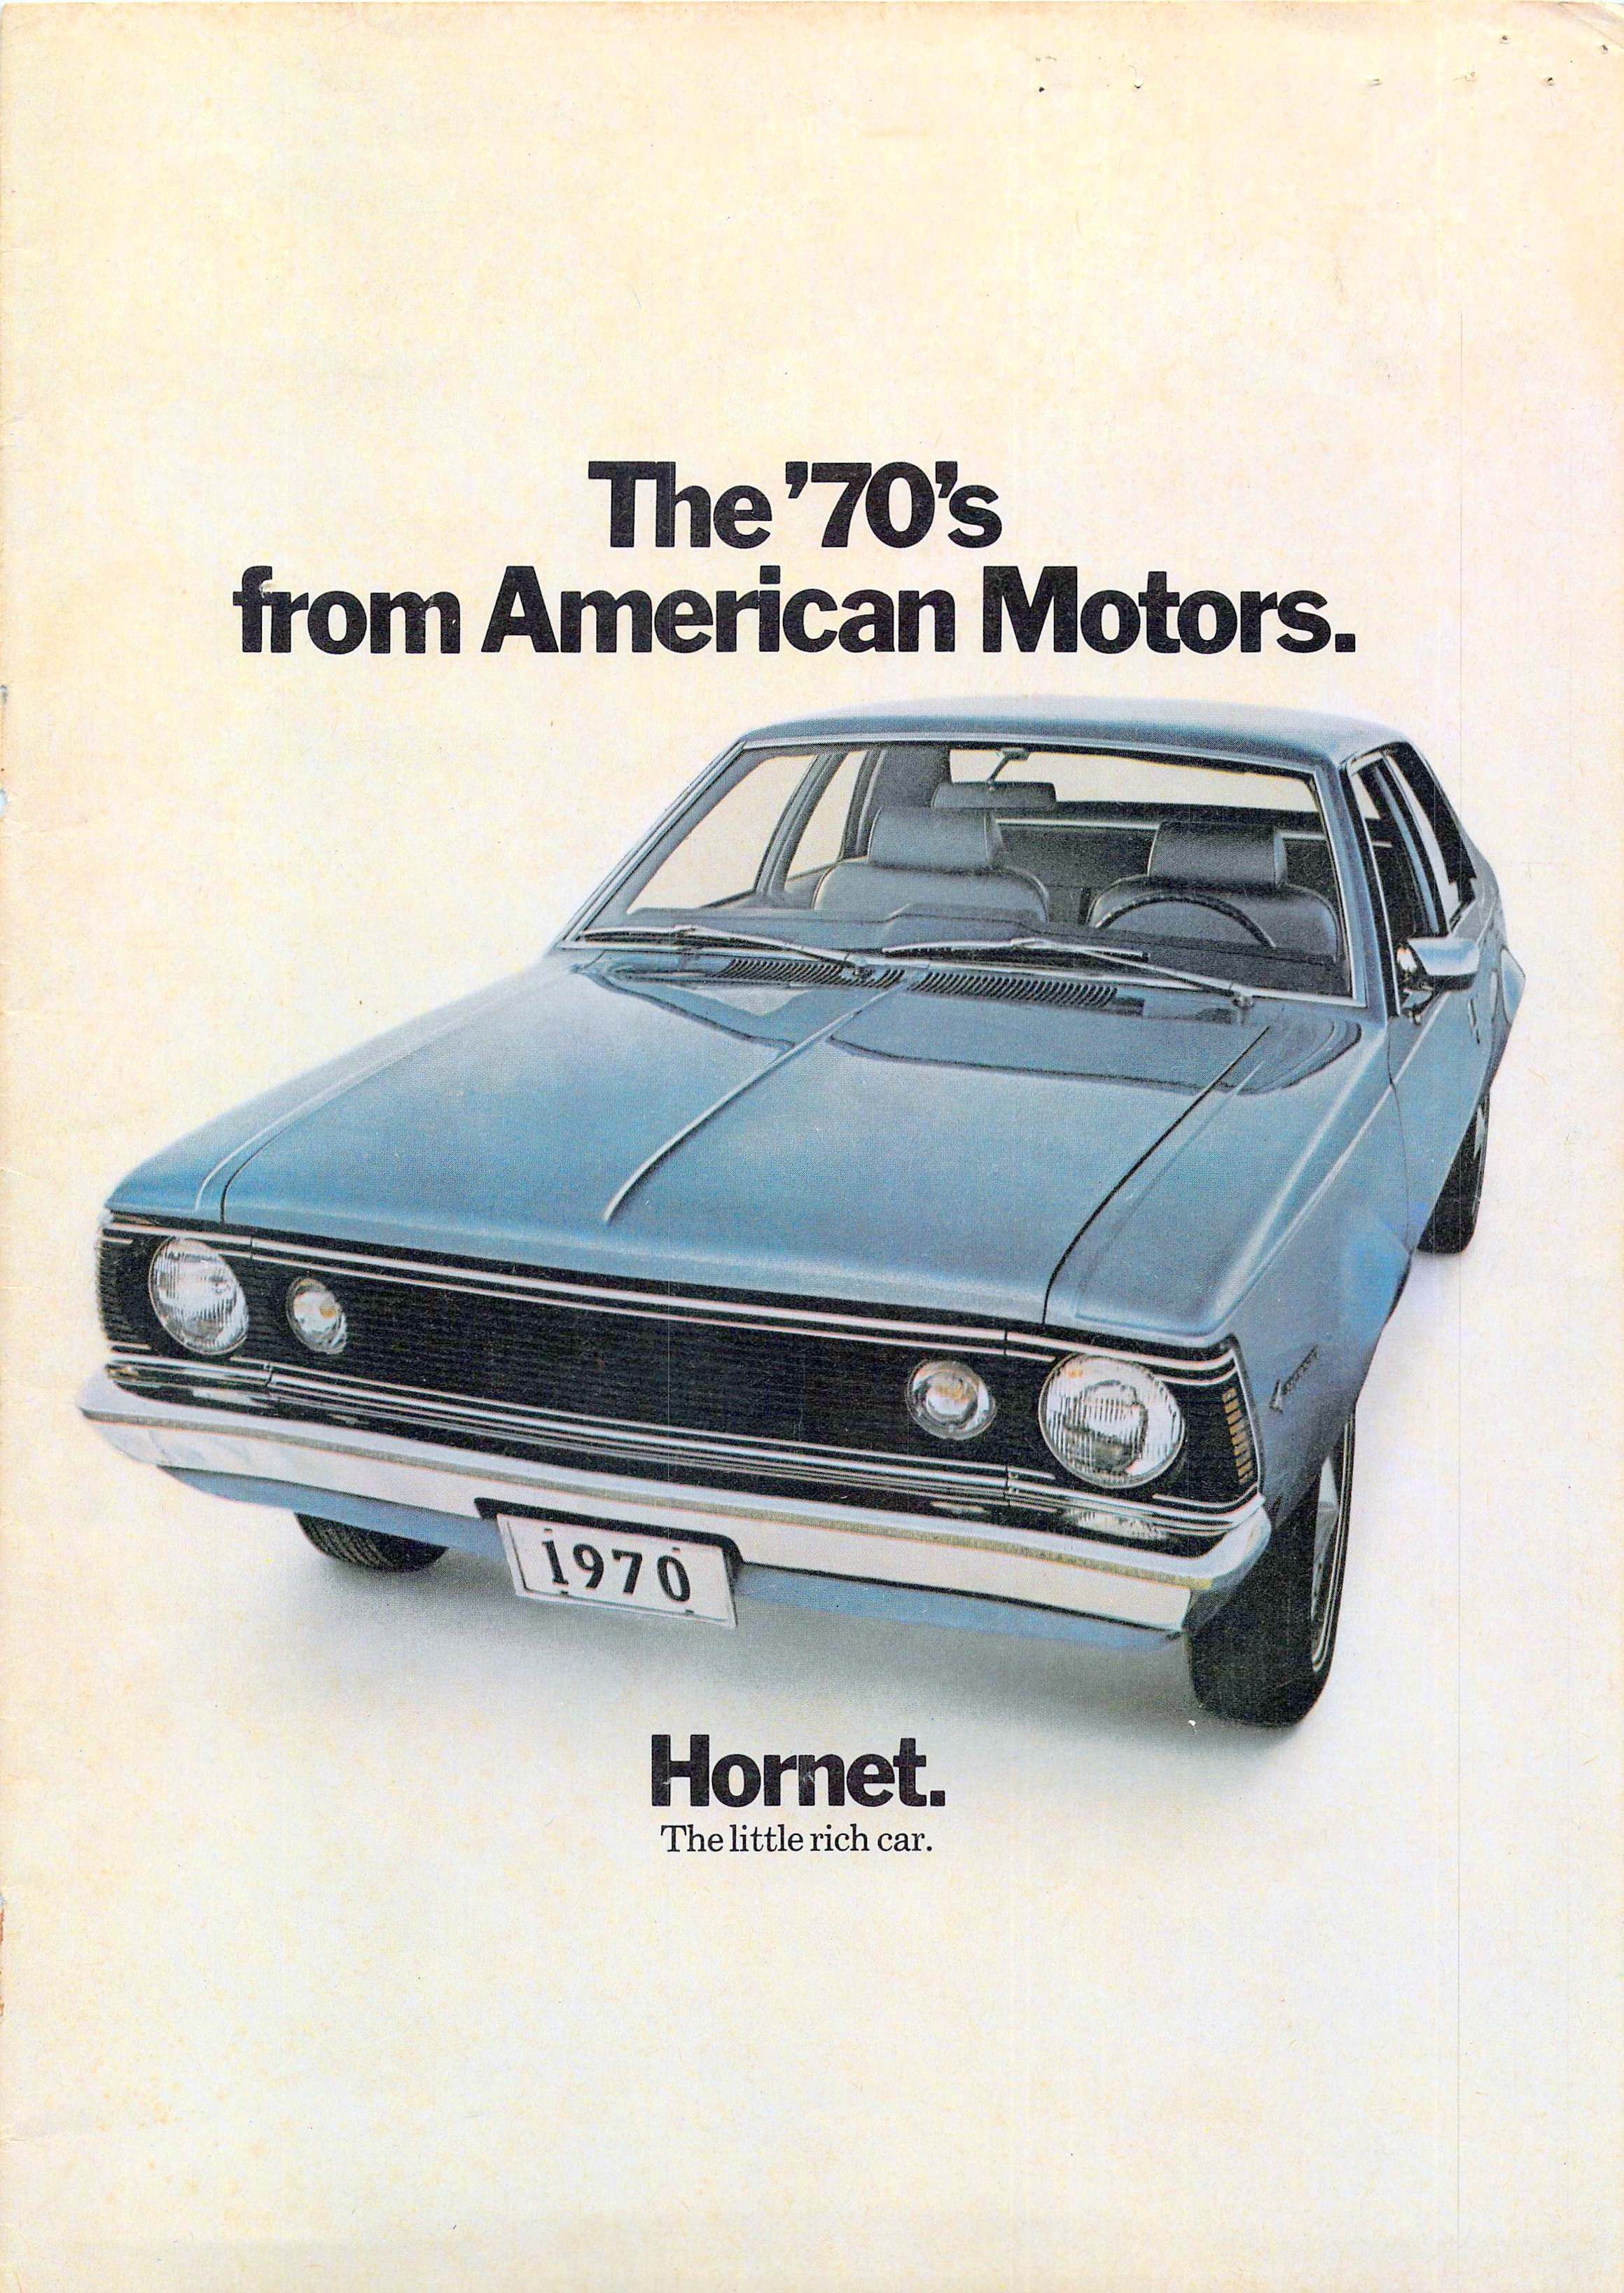 1970 Amc Consumer Brochure Amc Car Print Ads American Motors